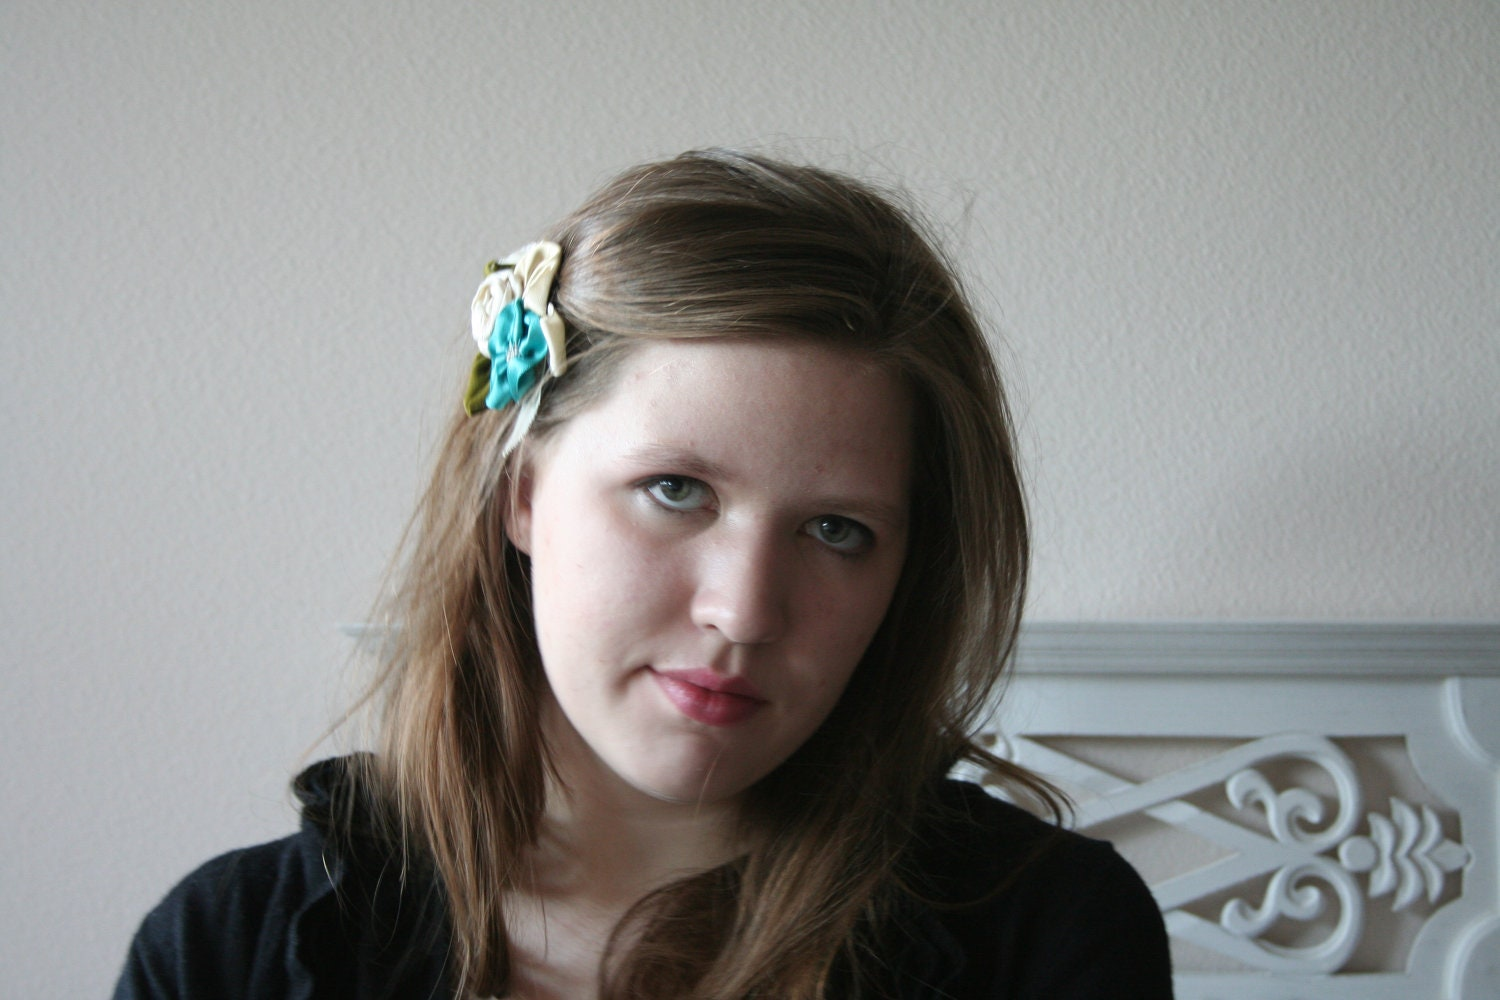 Flower hair clip // Ivory Yellow and Teal Hand Made Flowers with Velvet Leaves on a Metal Clip // Beaded Flower Hair Piece